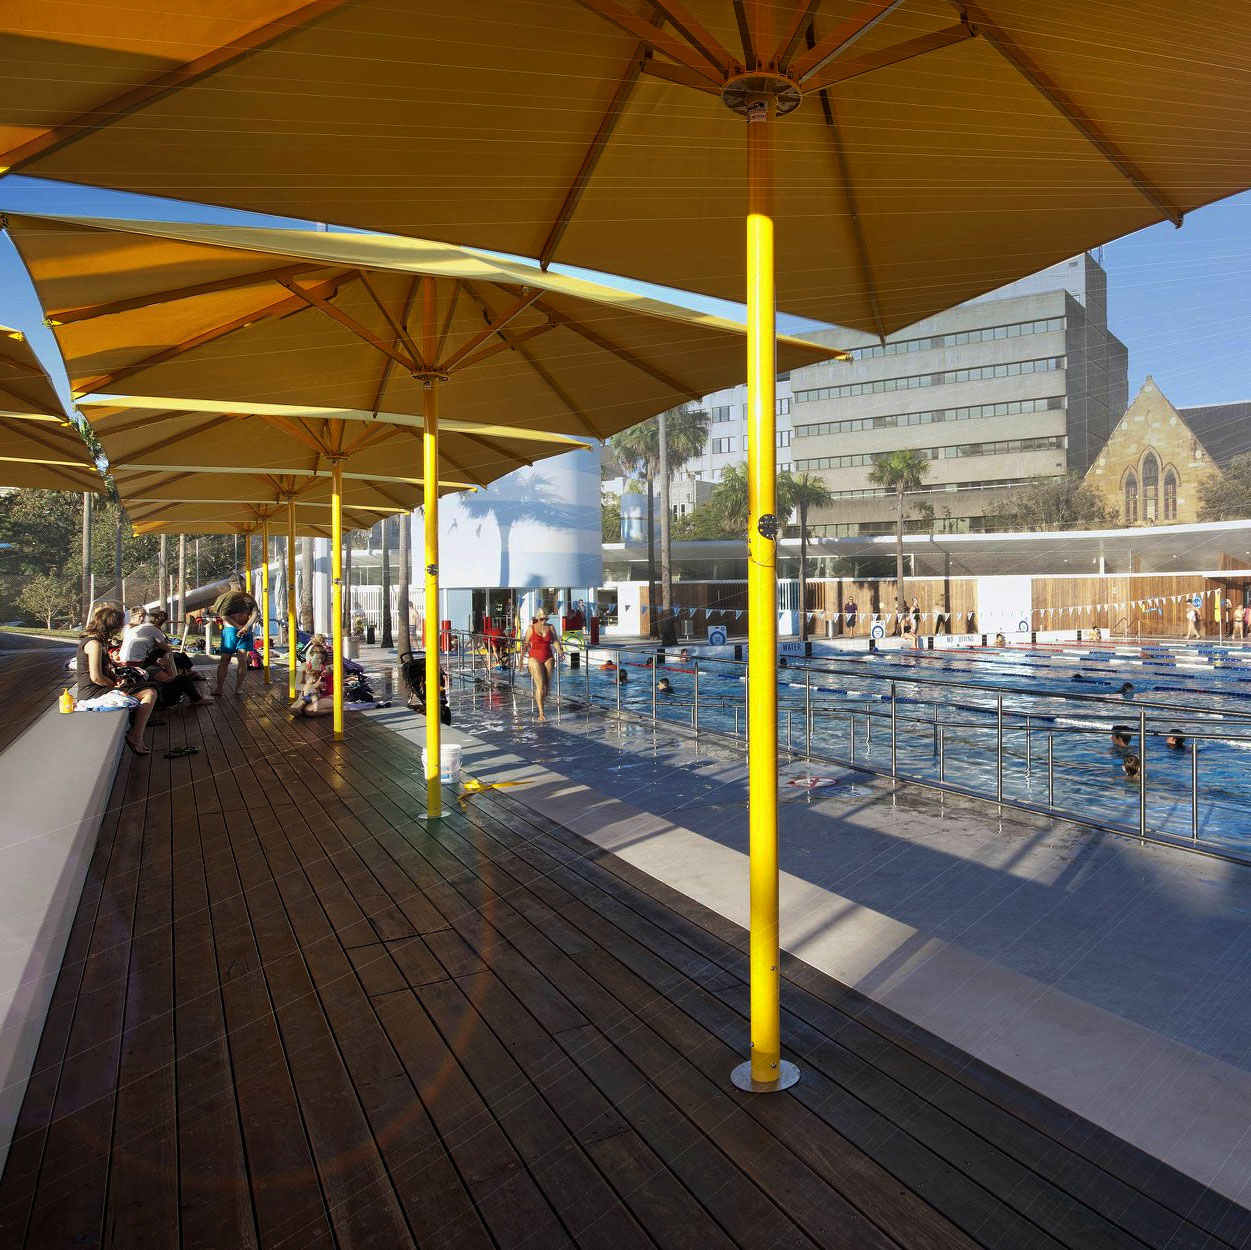 The Best Swimming Pool Umbrellas for Commercial Spaces